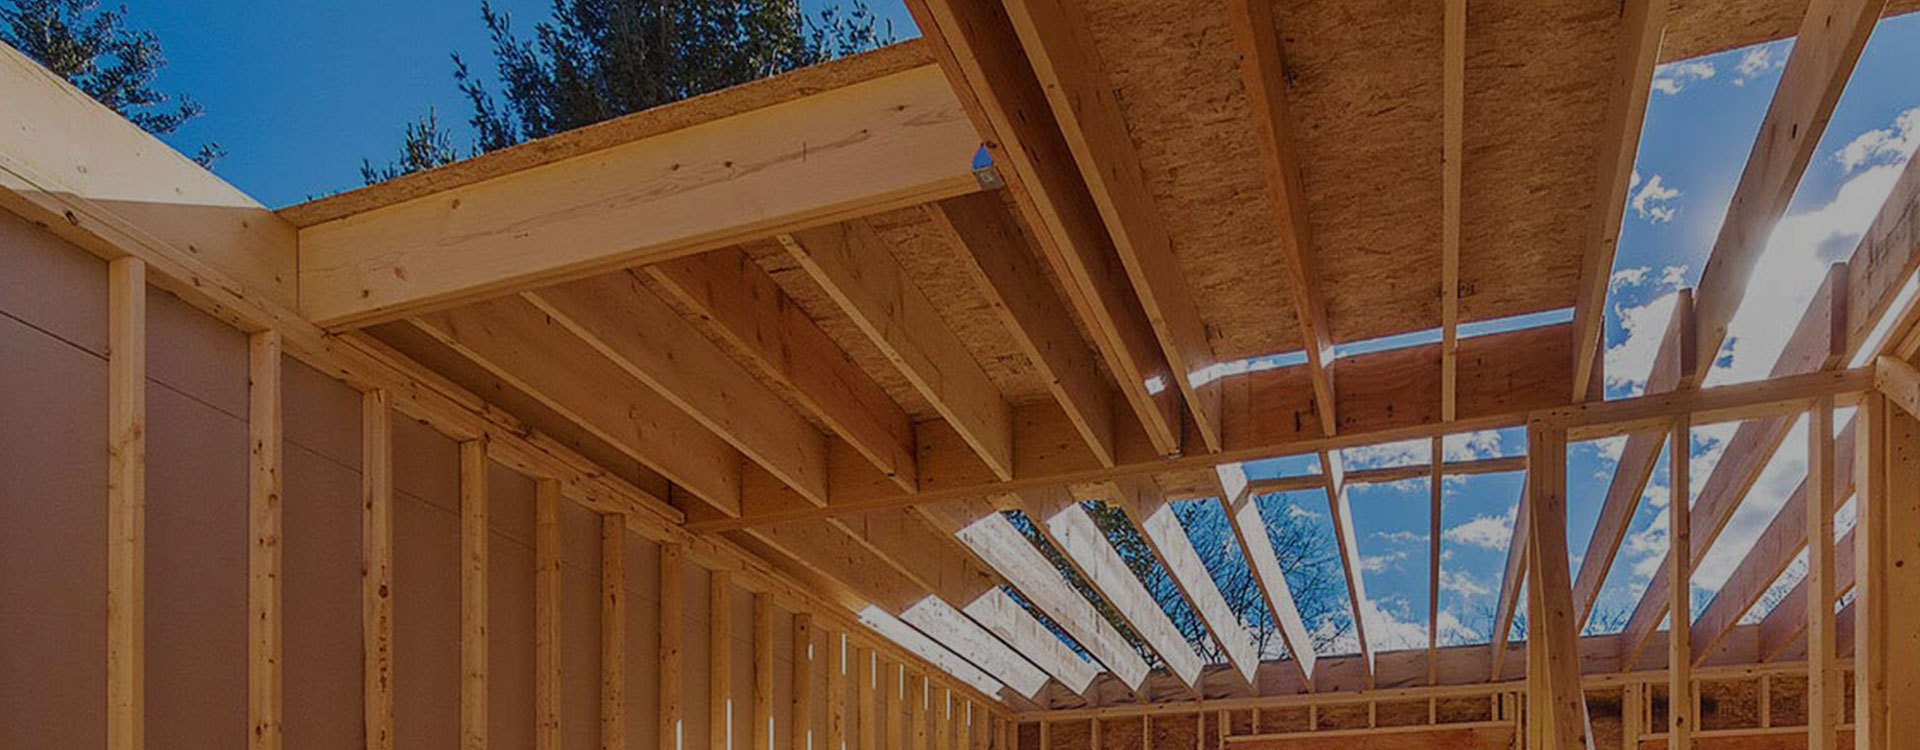 Easton General Contractor, Home Builder and Home Remodeling Contractor